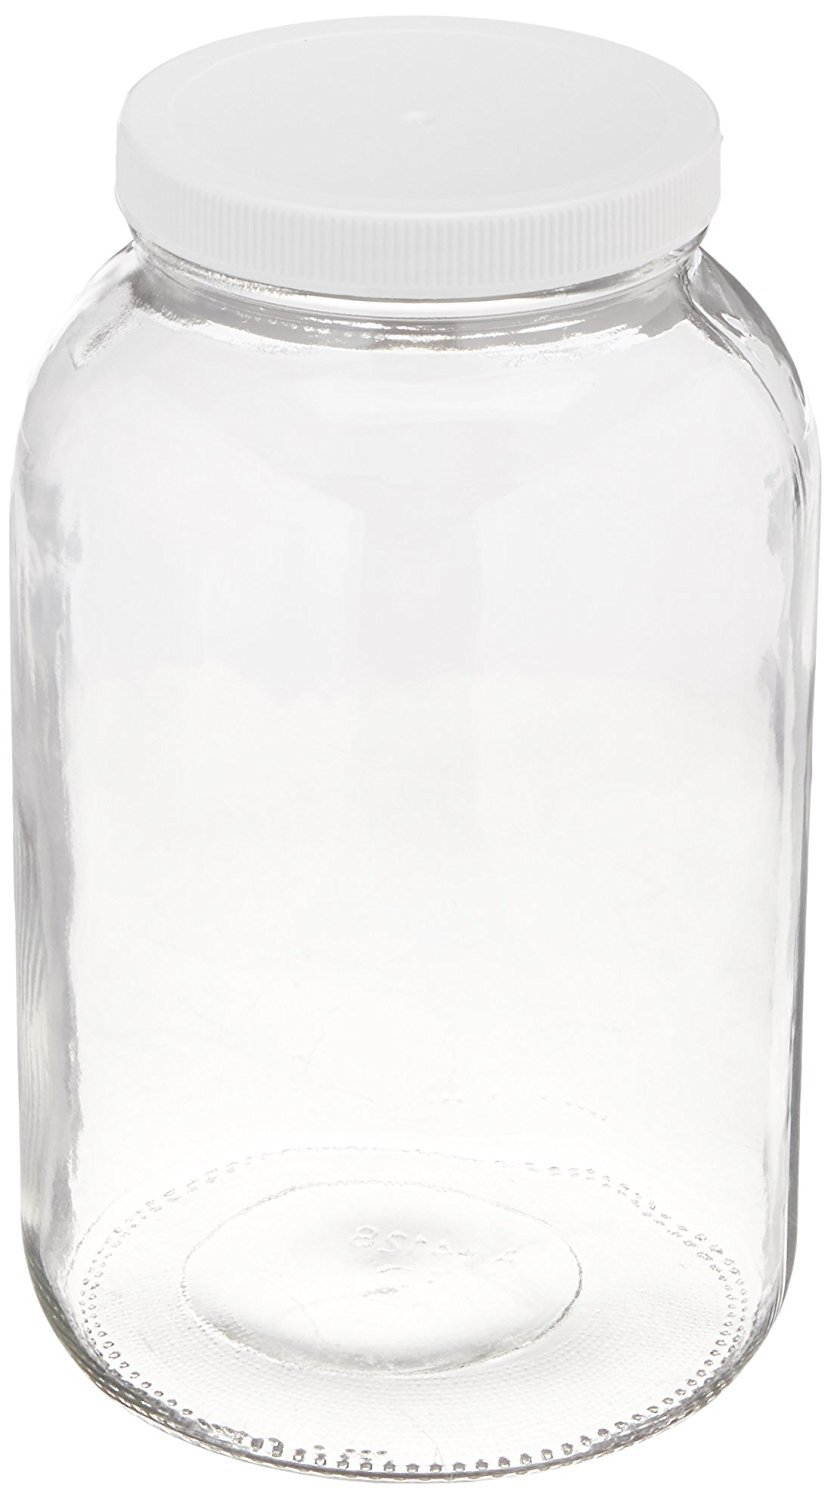 North Mountain Supply Nms A4128-C - 1 White Plastic Glass Wide-Mouth 110 CT Fermentation/Canning Jar with Plastic Lid, 1 gal, White